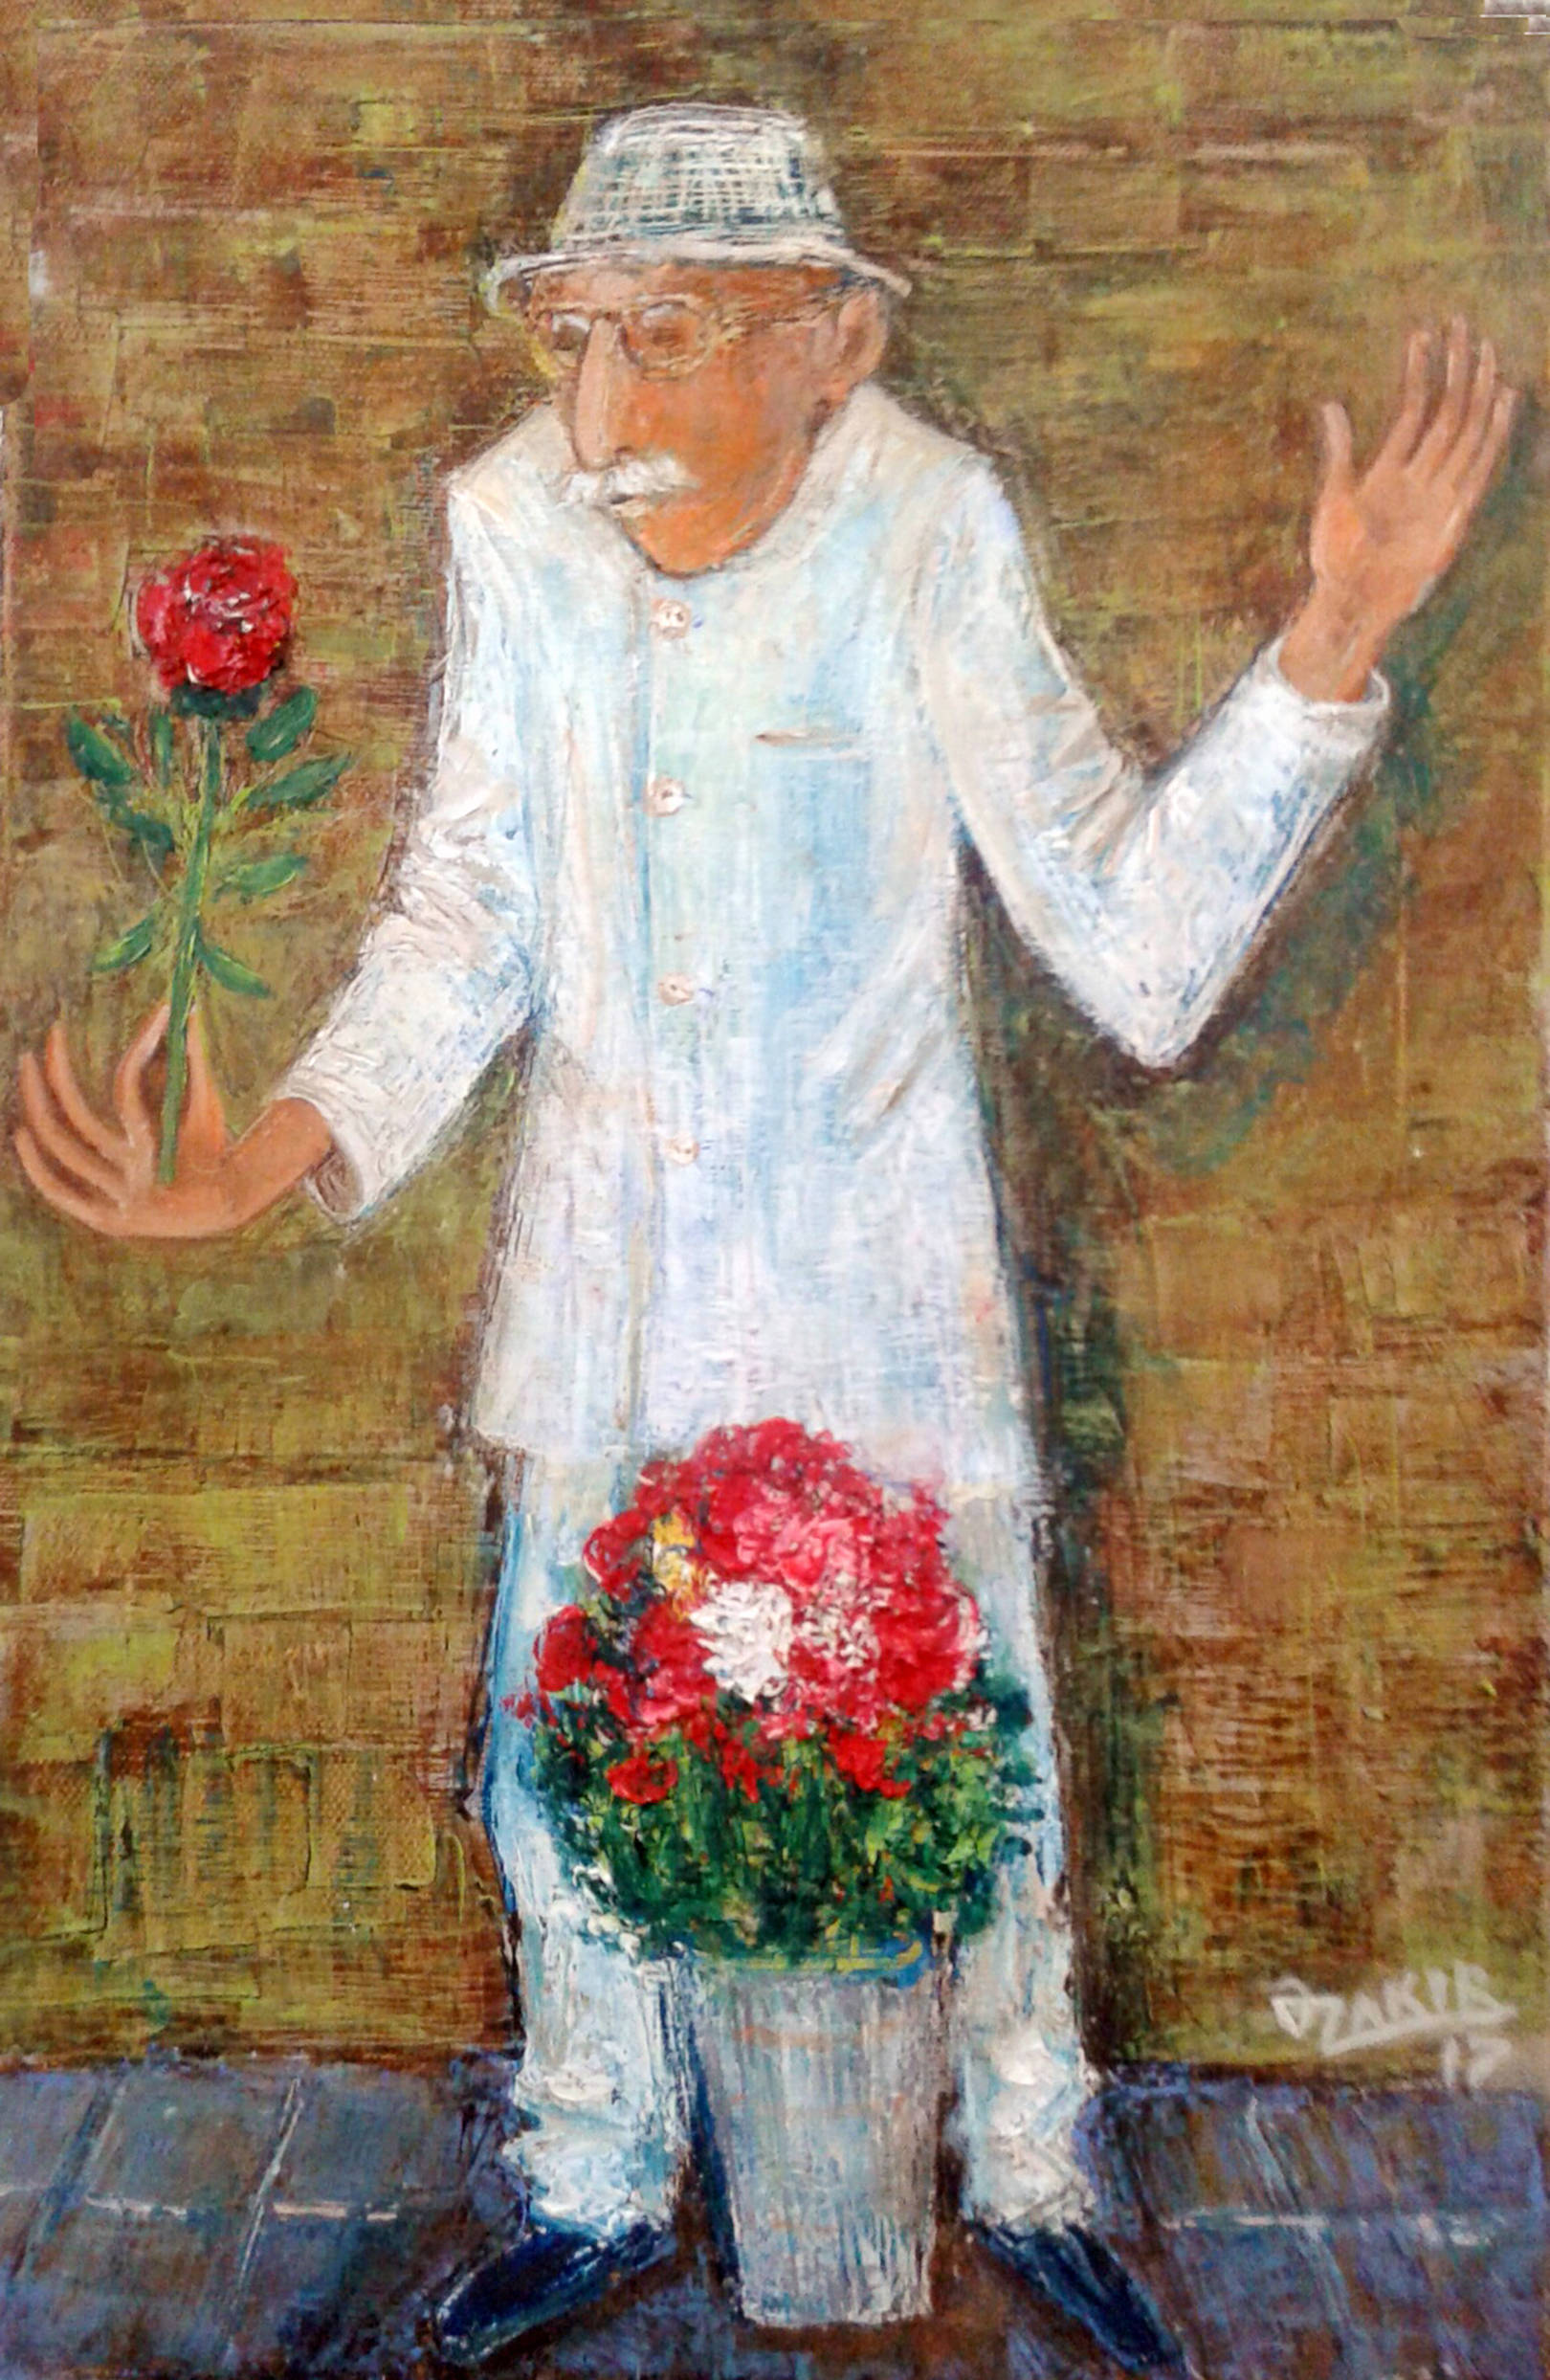 Flower seller2017year 45x30cmOriginal Painting Oil on Canvas2500$